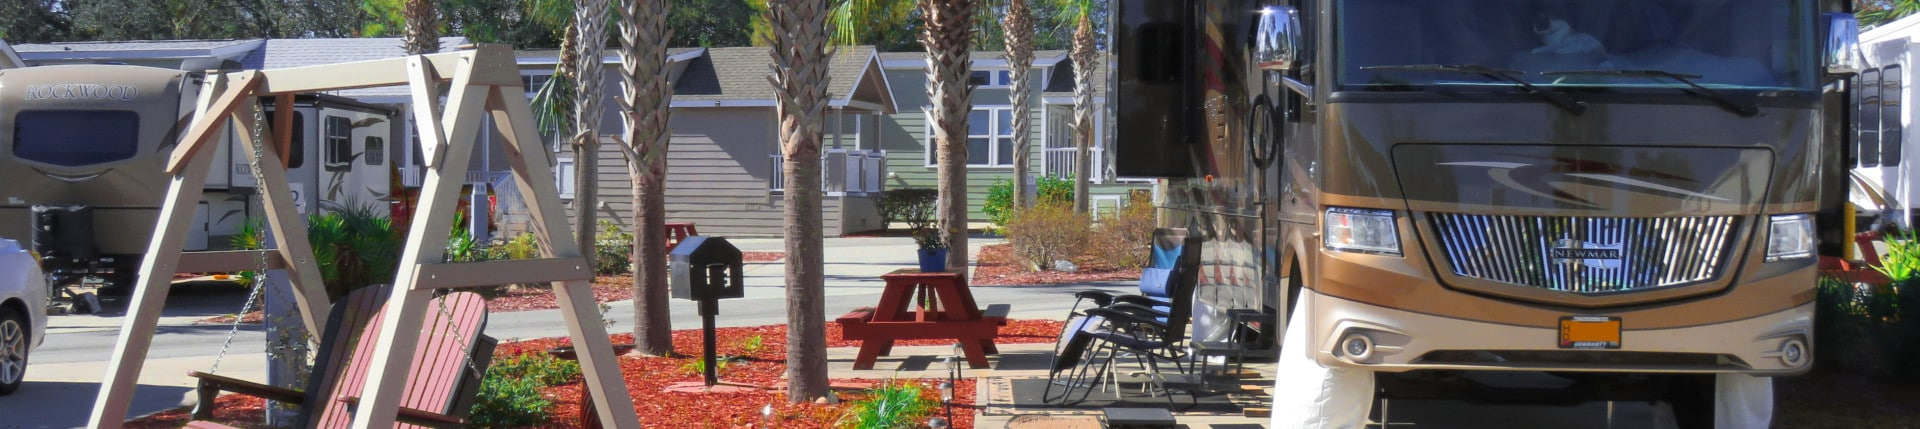 Carrabelle Beach RV Resort Accommodations